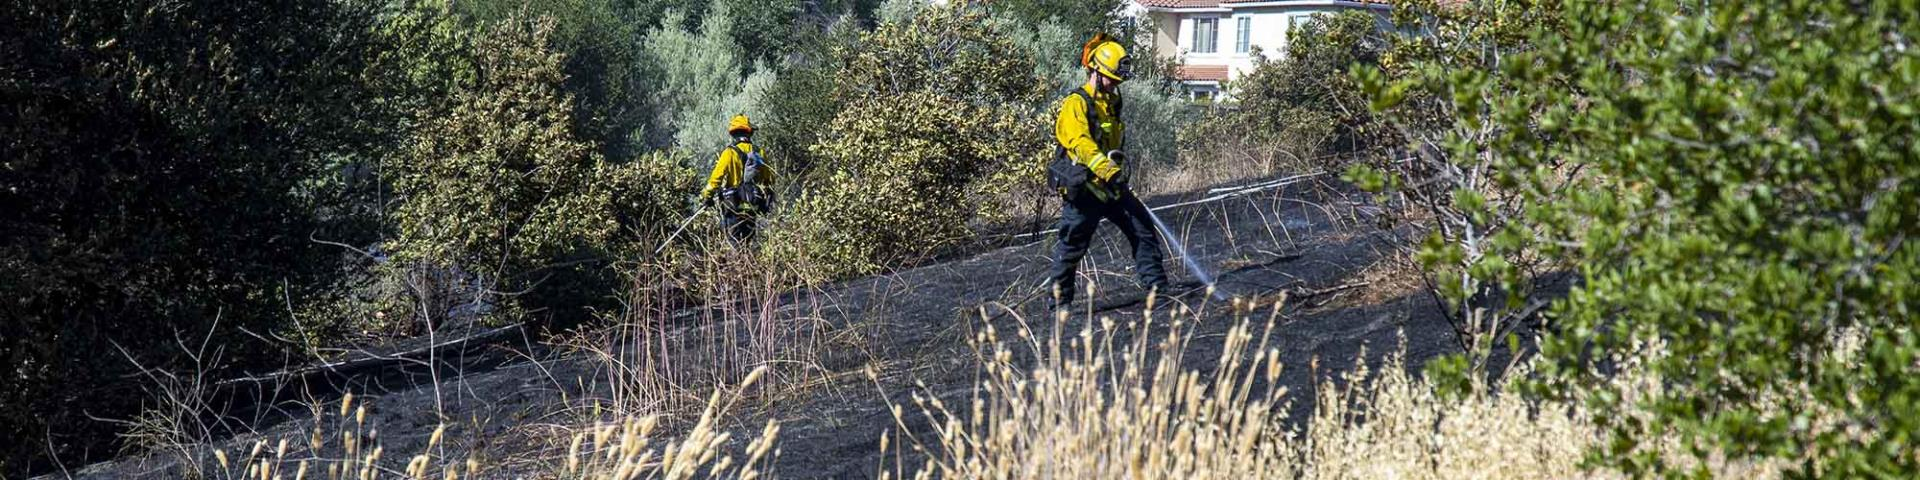 Firefighters extinguish vegetation fire